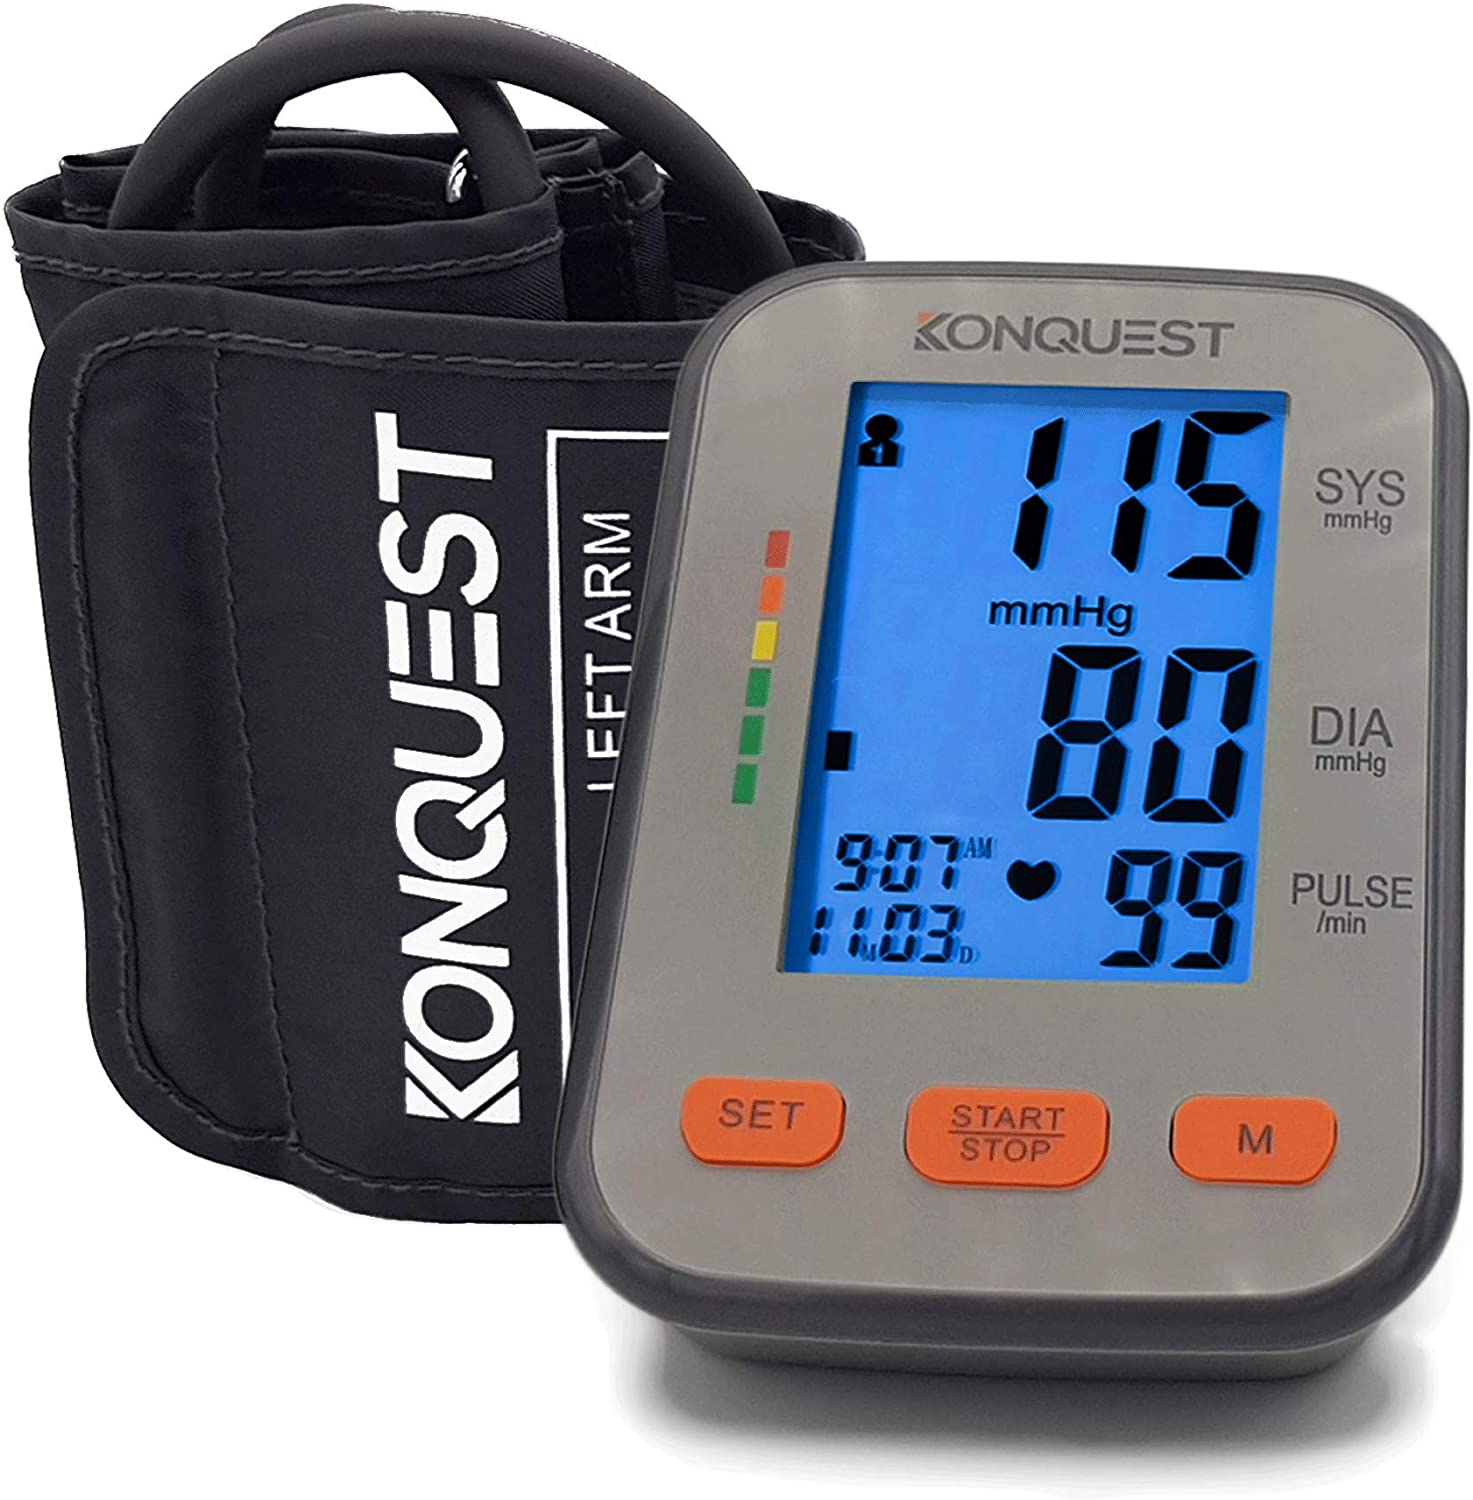 KONQUEST KBP-2704A Automatic Upper Arm Blood Pressure Monitor – Accurate, FDA Approved – Adjustable Cuff, Large Backlit Display – Irregular Heartbeat Hypertension Detector – Tensiometro Digital